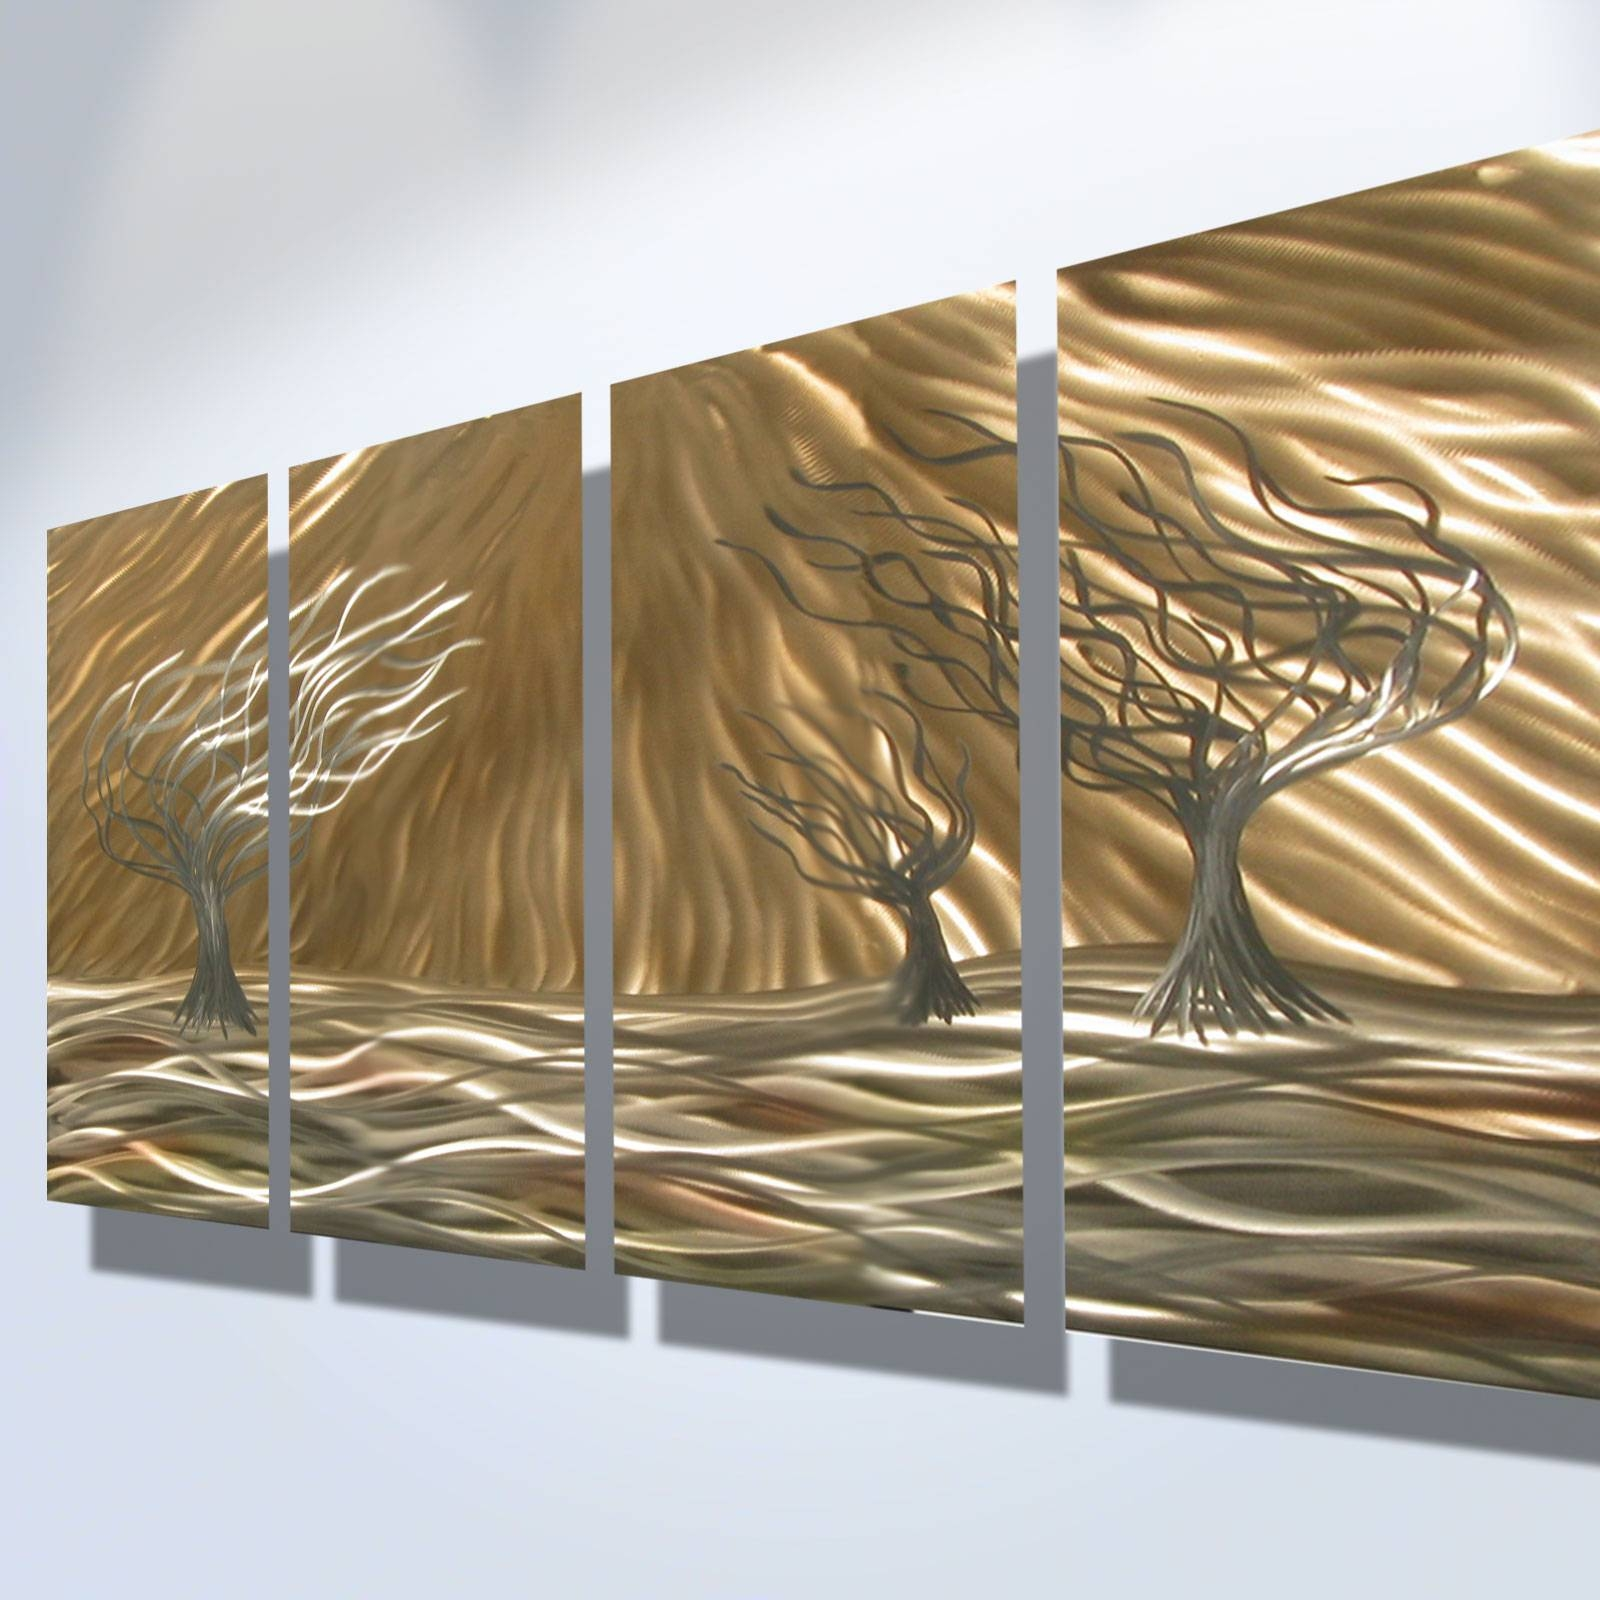 3 Trees 4 Panel – Abstract Metal Wall Art Contemporary Modern Inside Latest Modern Abstract Metal Wall Art (View 3 of 20)